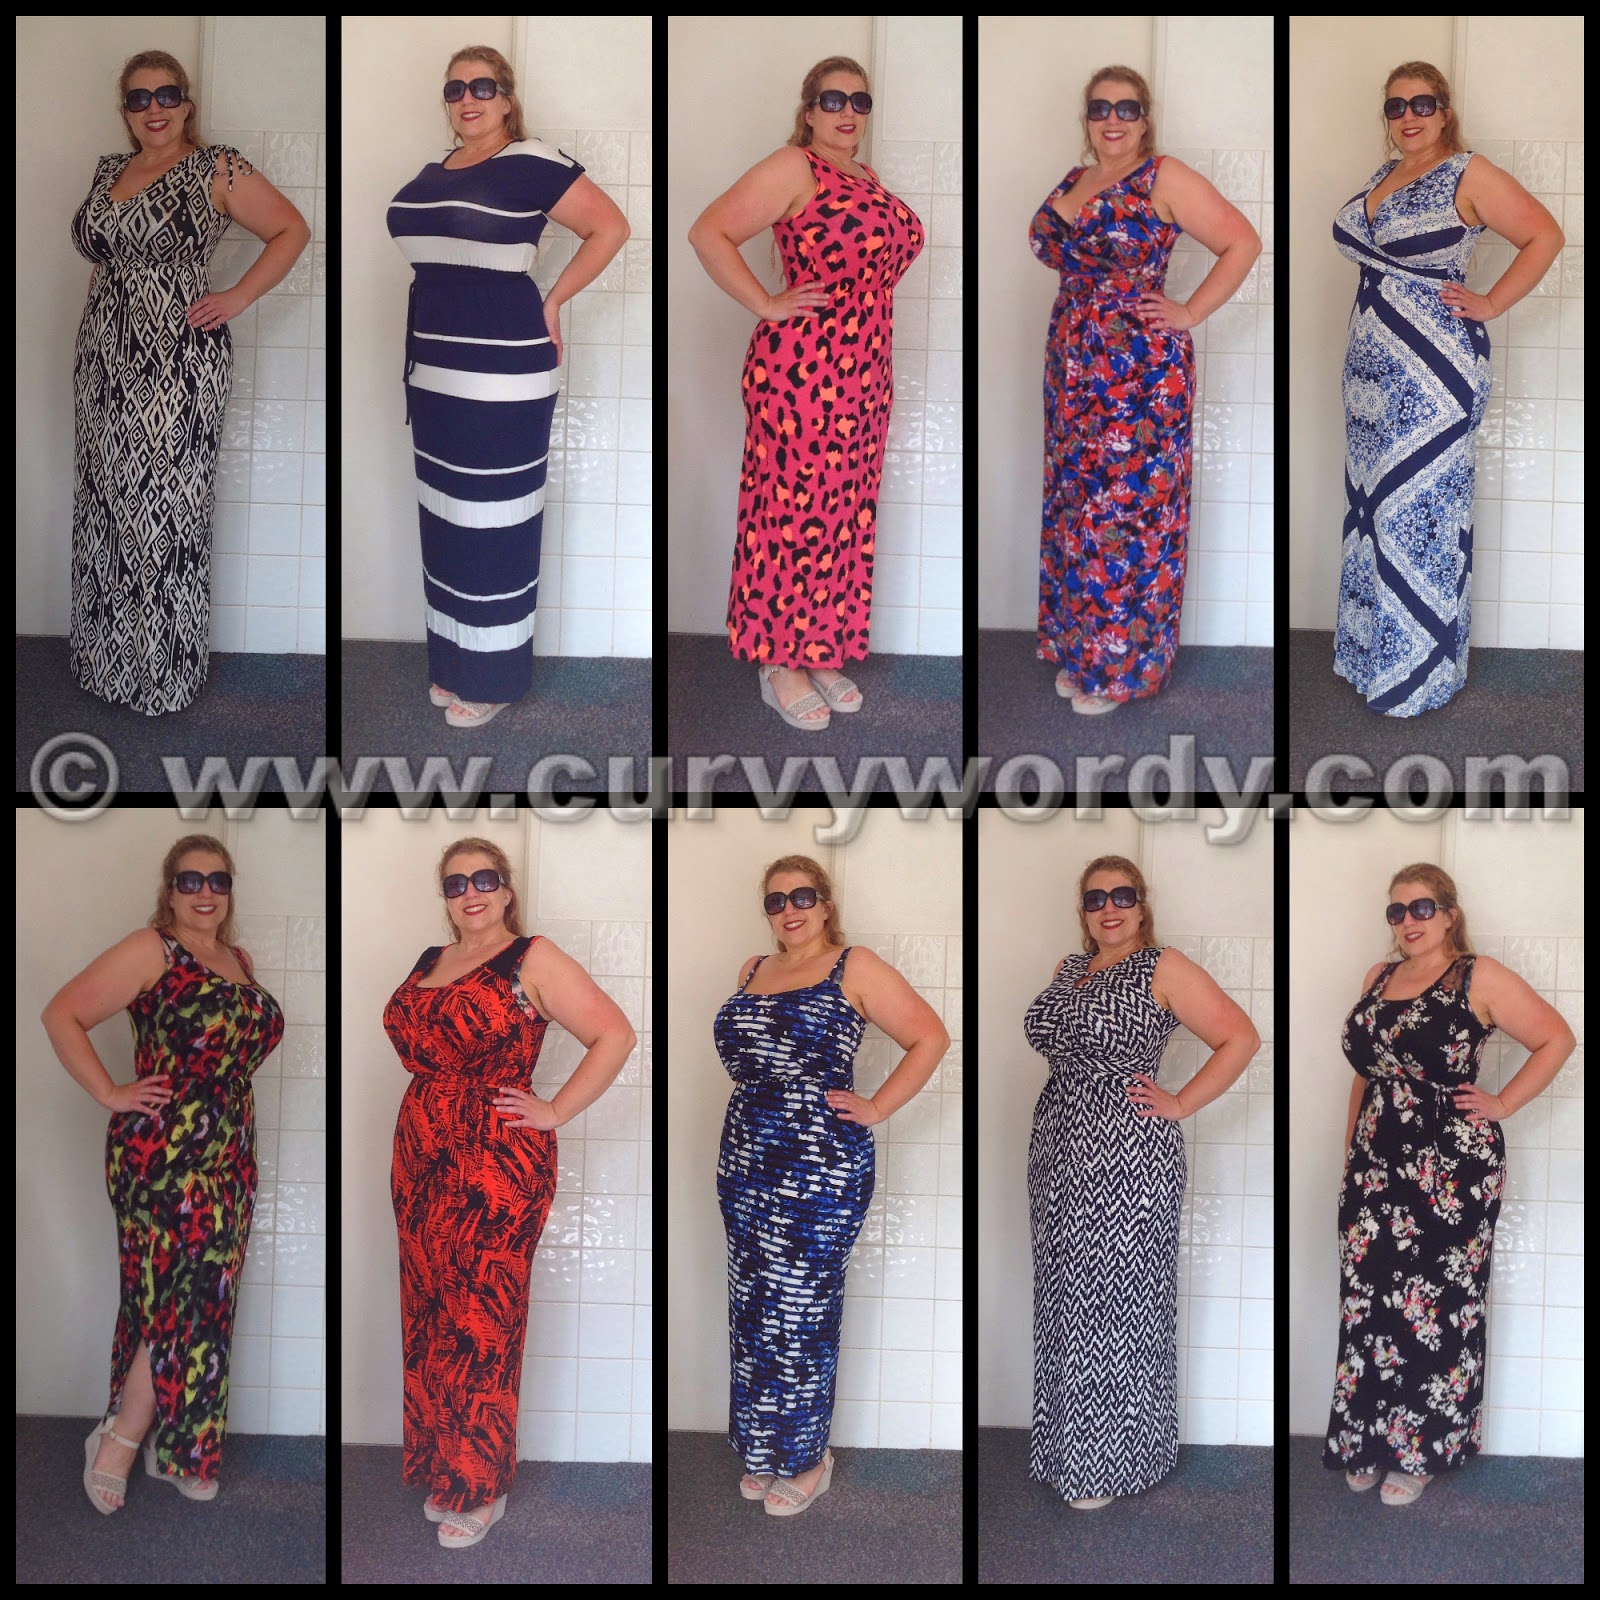 George at Asda Maxi Dresses – Summer 2014